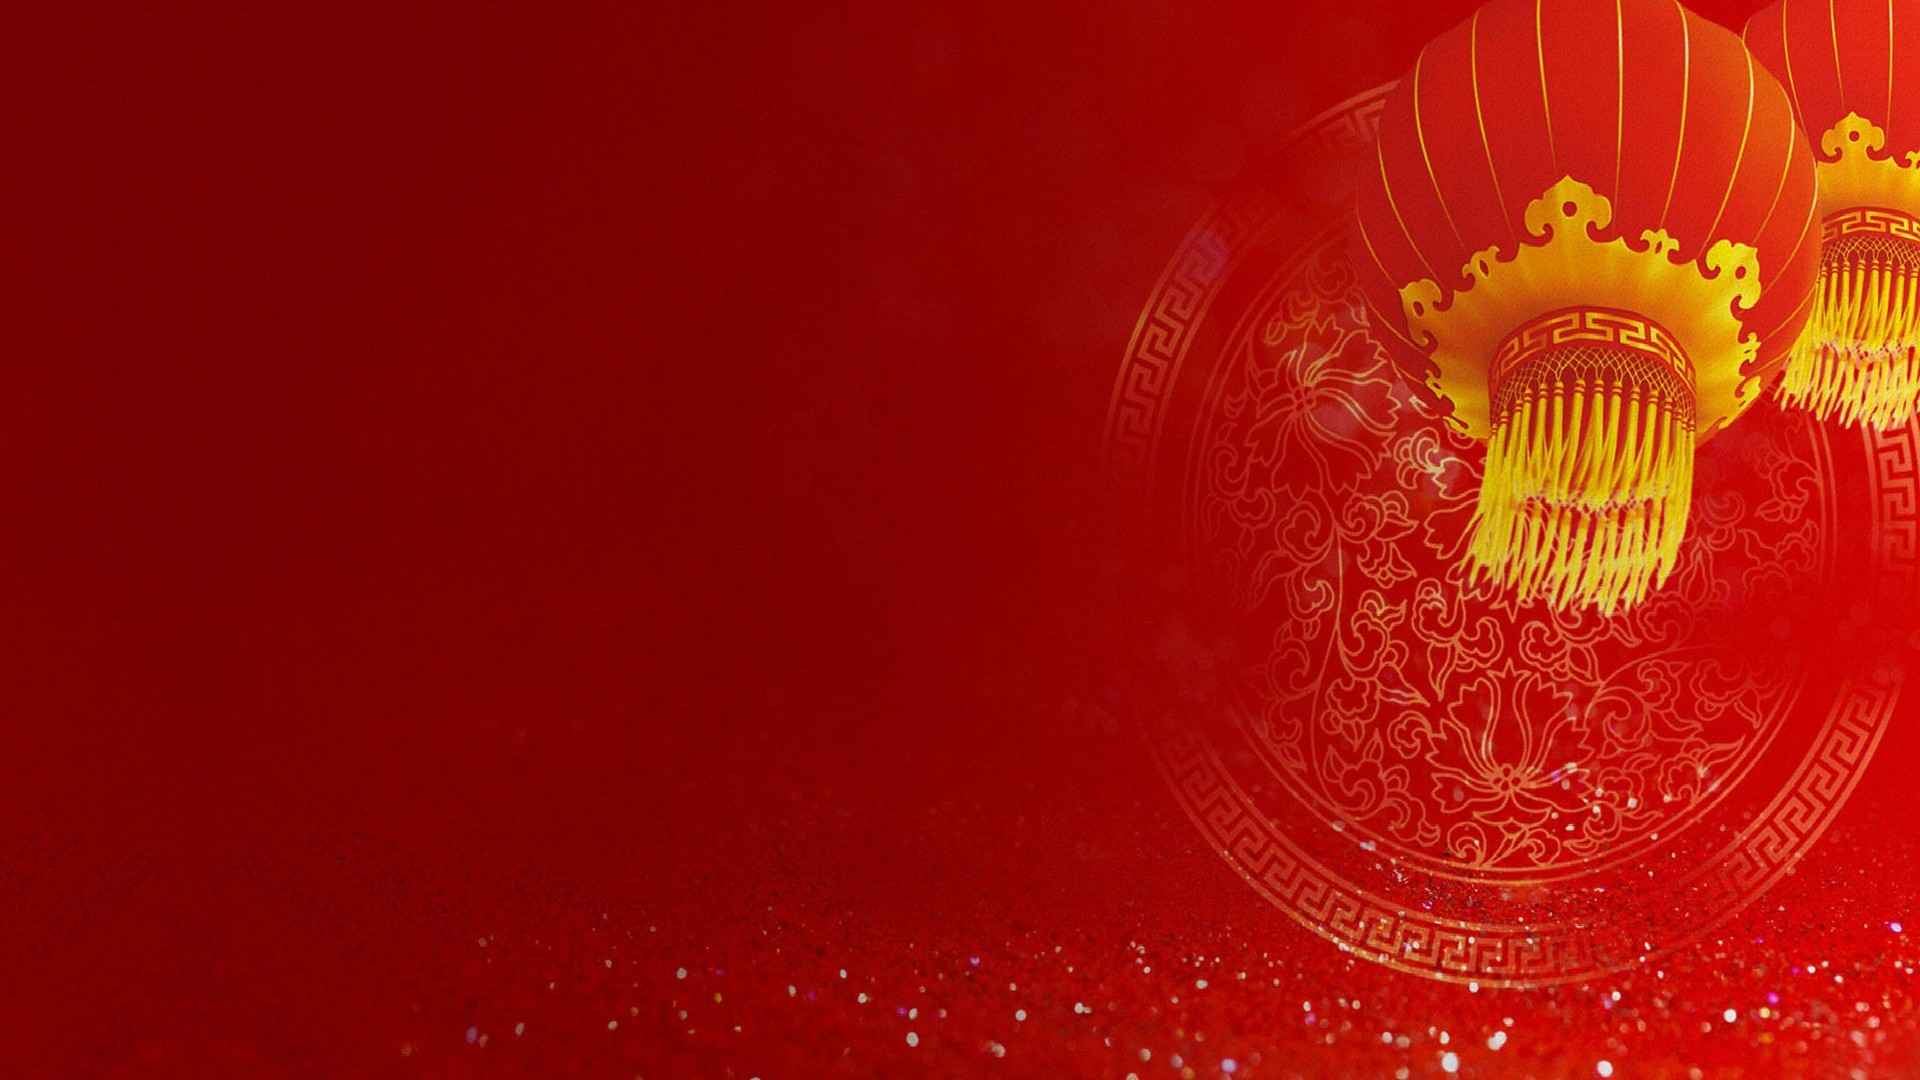 Chinese New Year 2014 HD   Wallpaper High Definition High Quality 1920x1080